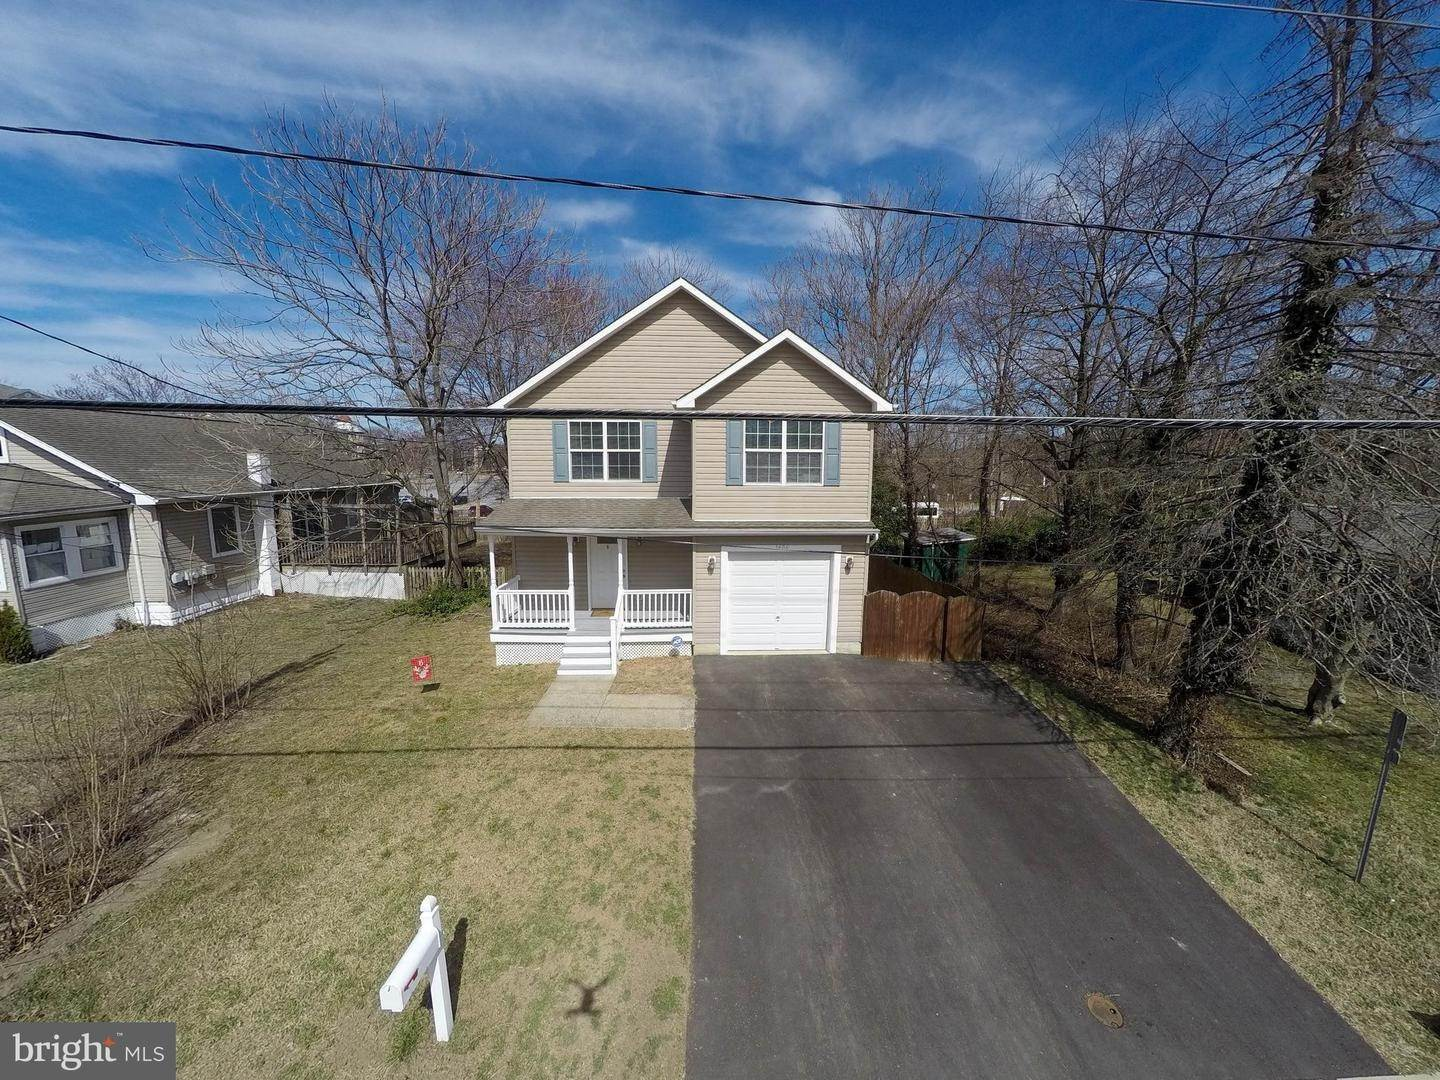 43. Single Family Homes om Odenton, Maryland, 21113 Verenigde Staten